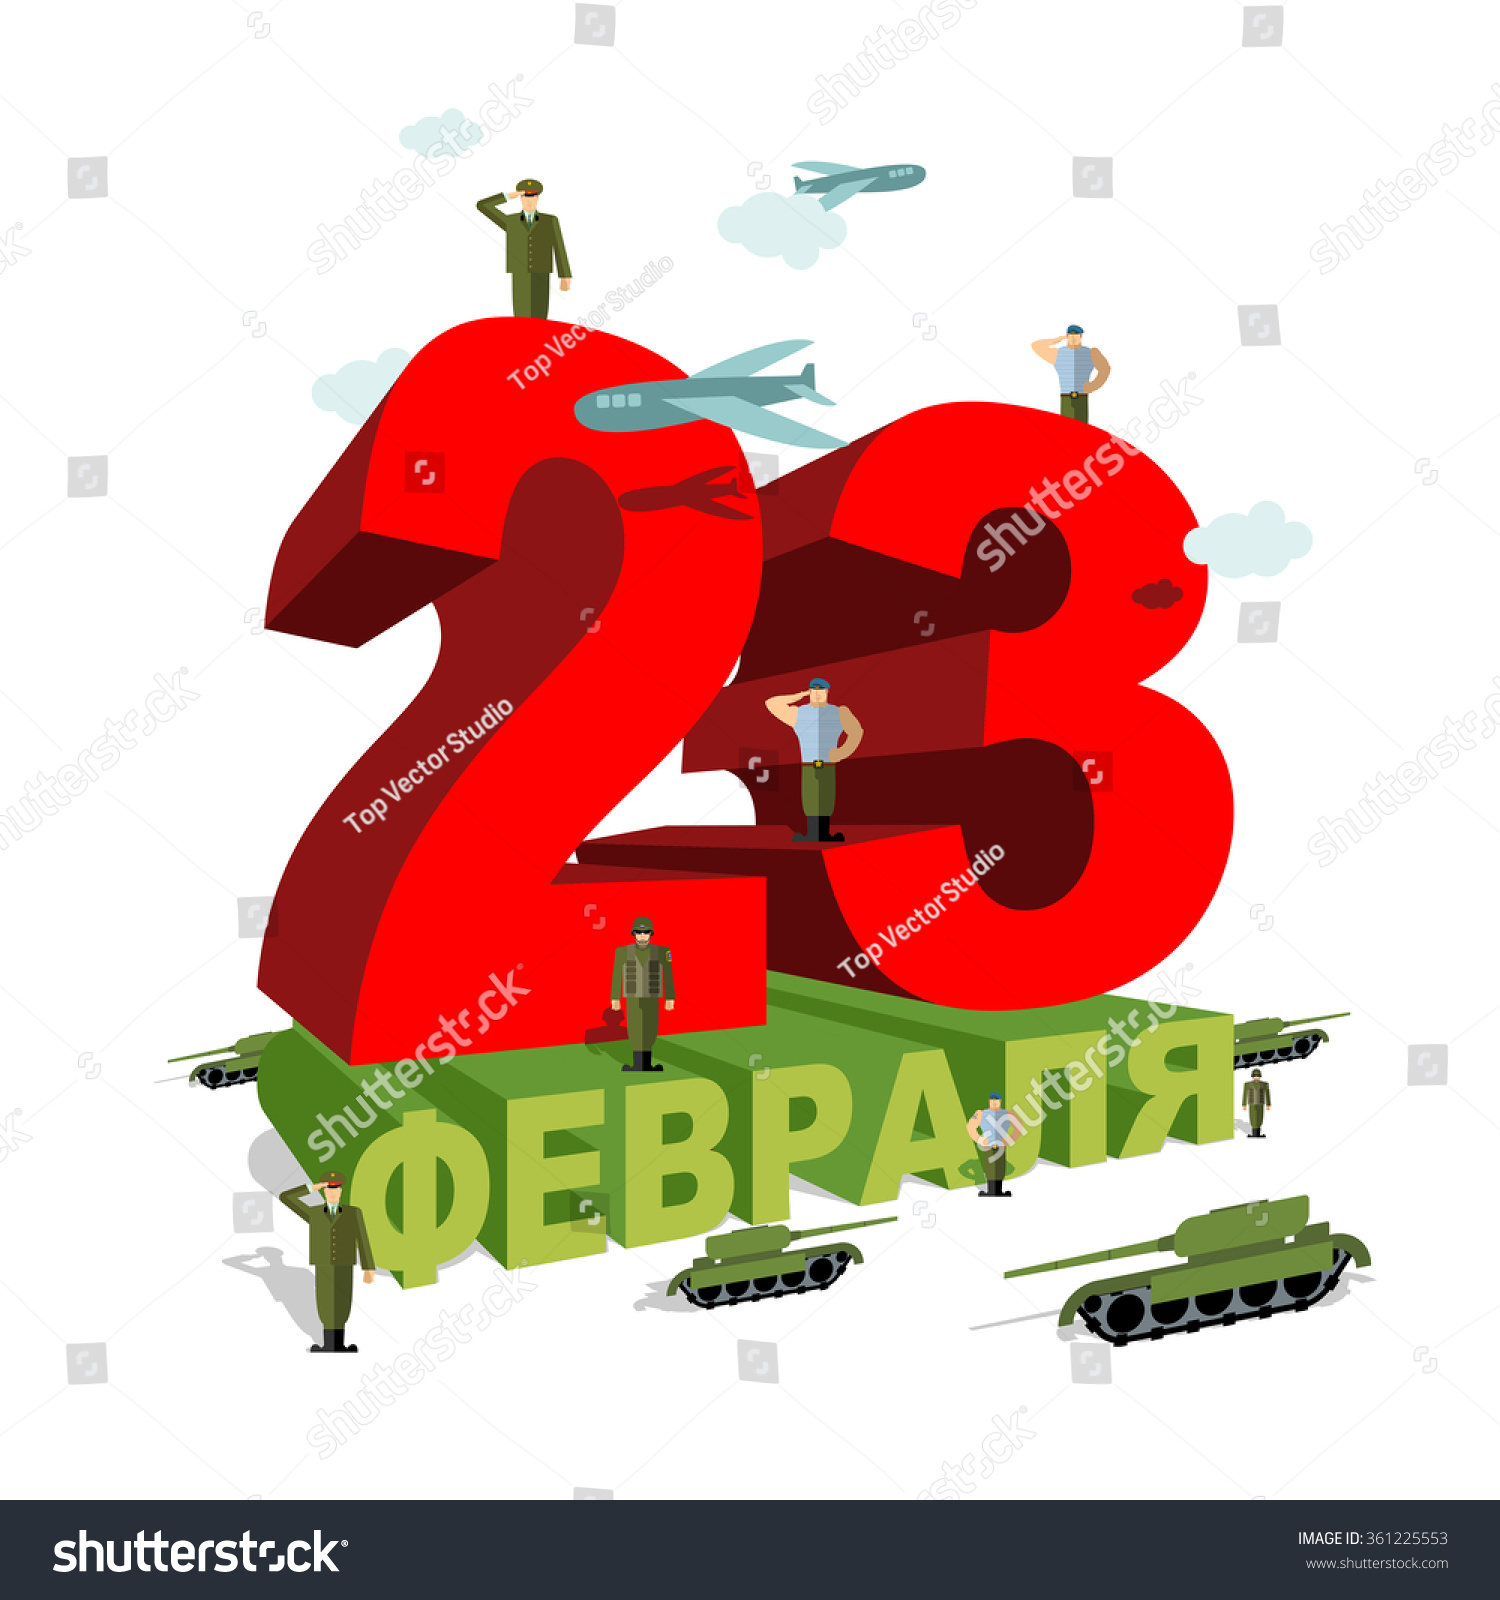 23 February Patriotic Celebration Military Russia Stock Vector ...